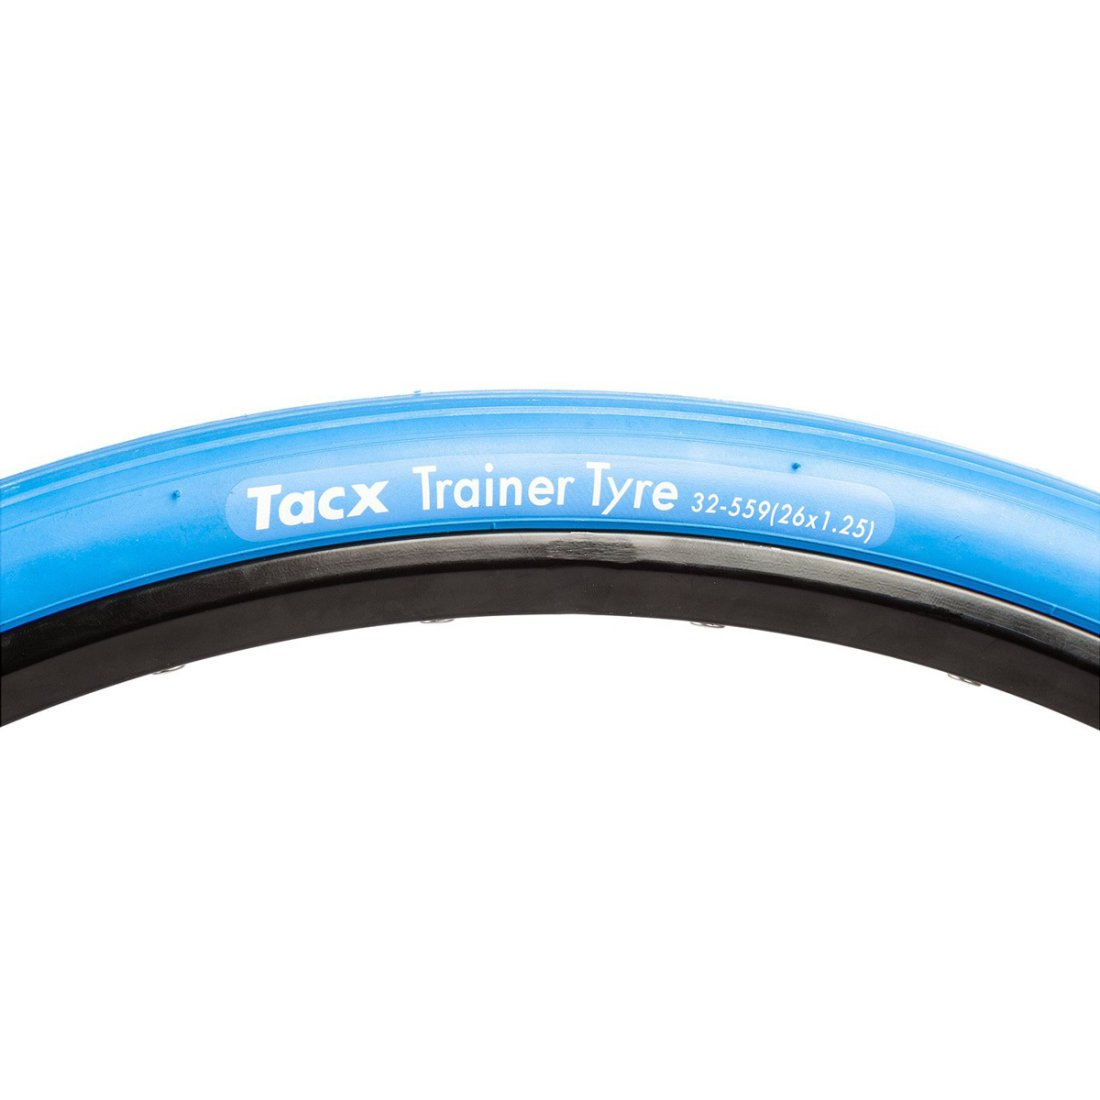 Tacx Trainer Tyre Mtb 26 T 1395 2016 Blue Rim And Tyre